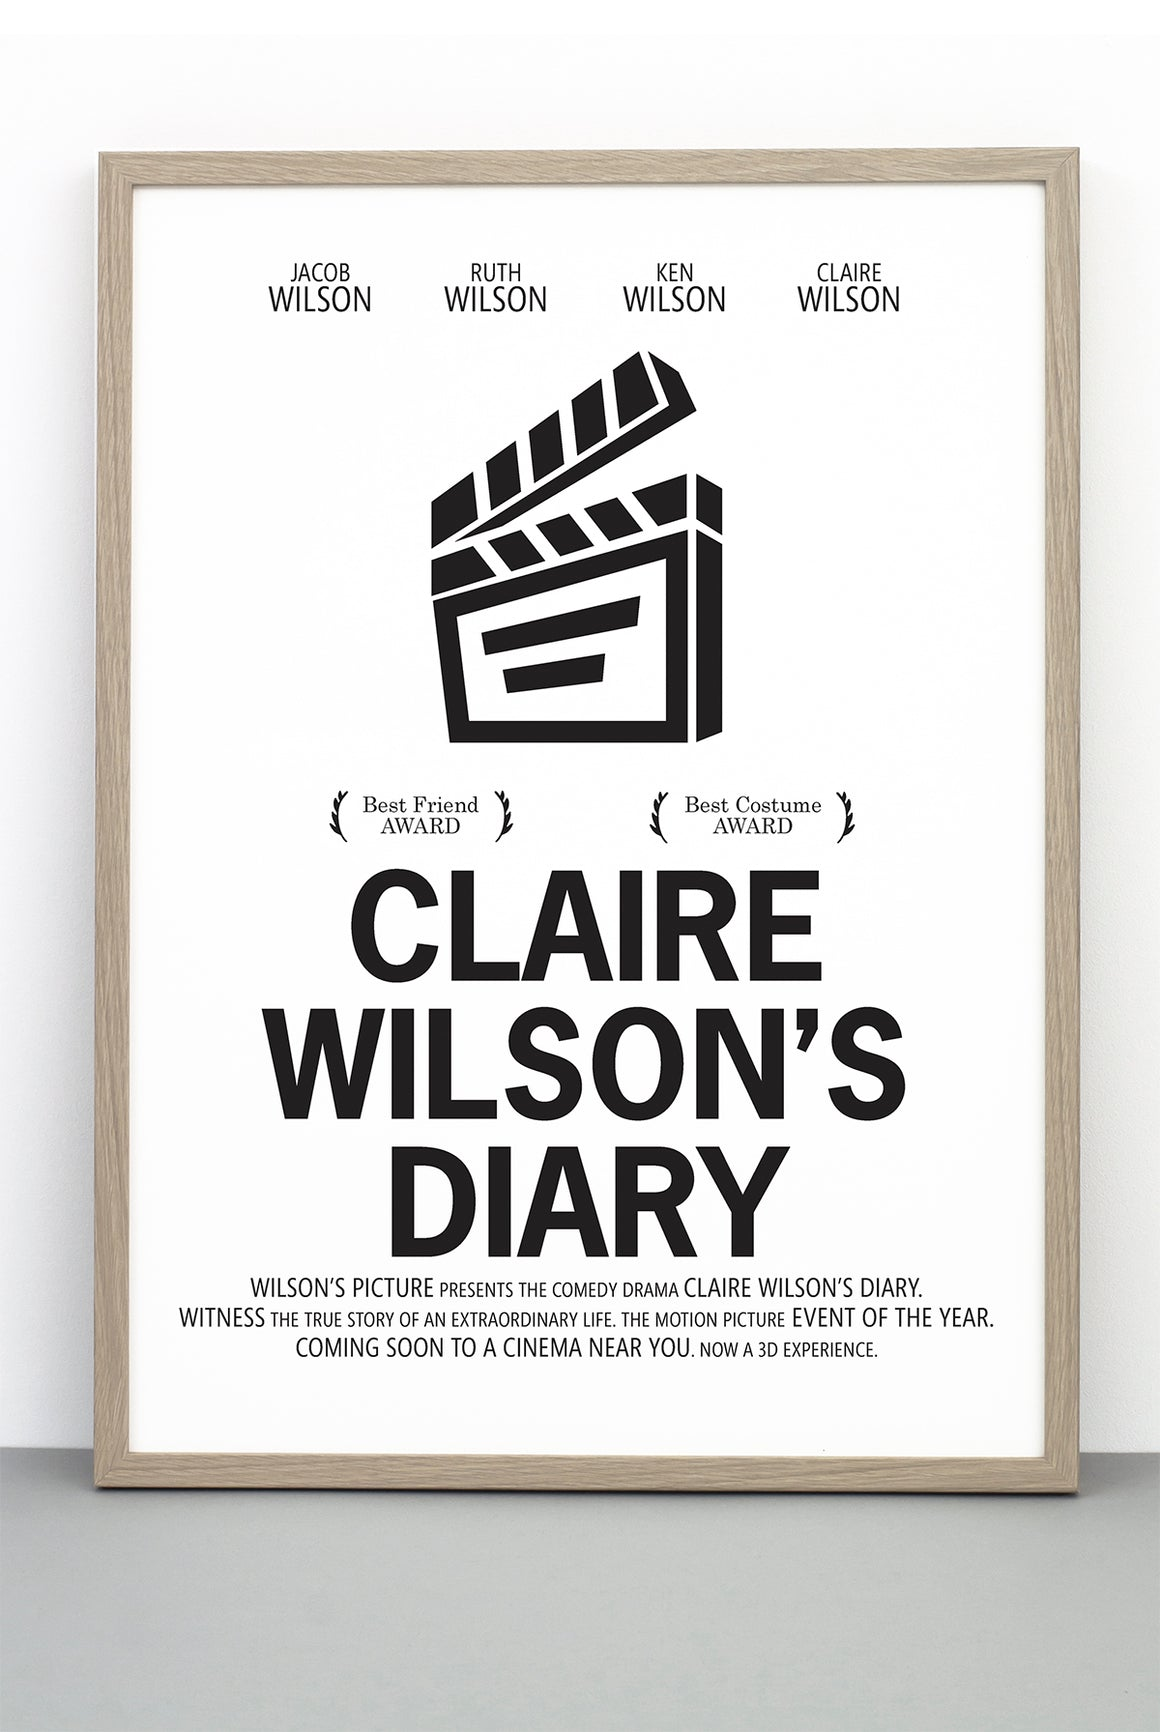 PERSONALISED FILM PRINT 'BRIDGET JONES'S DIARY'